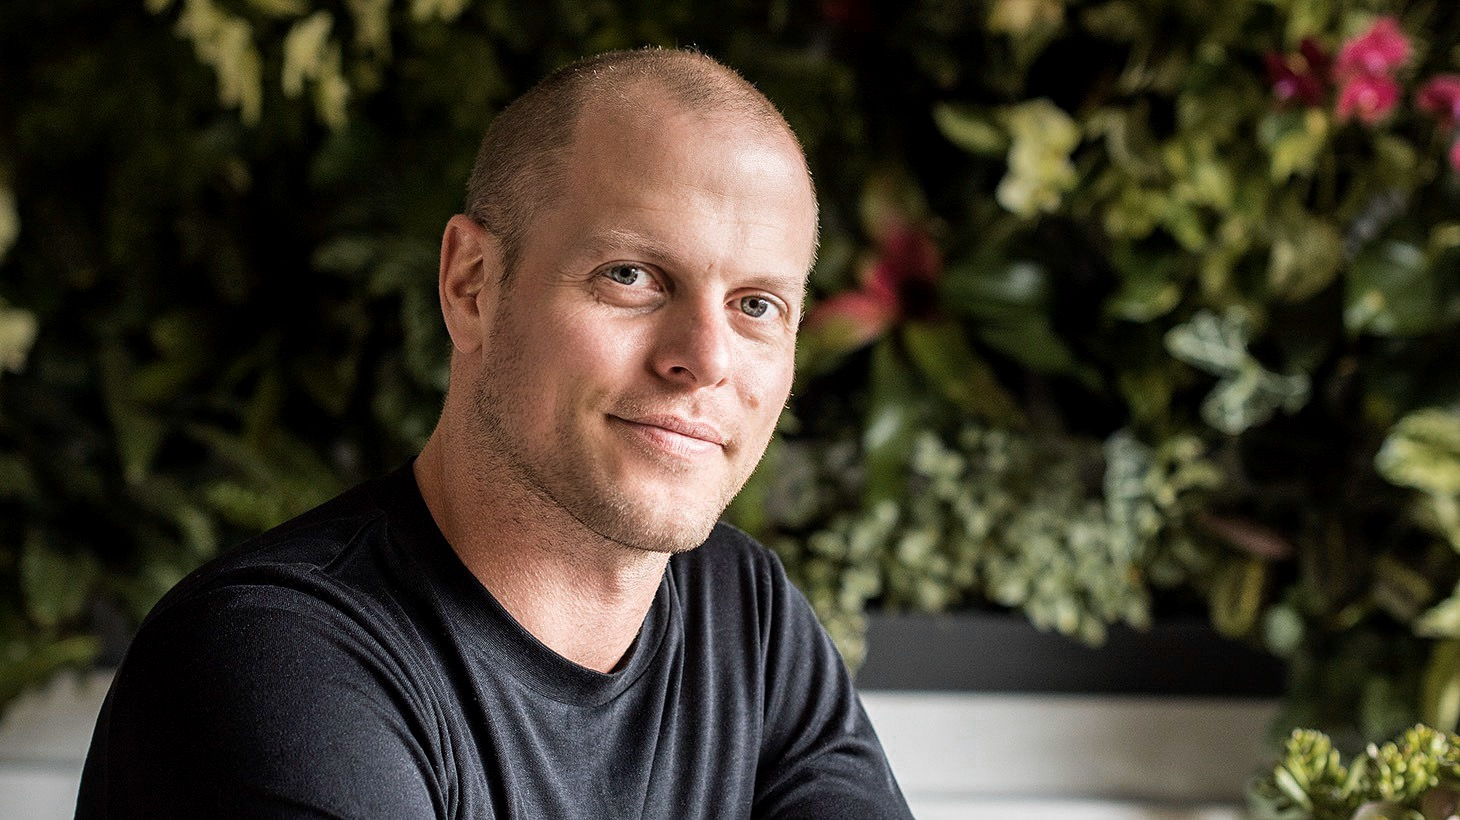 Podcaster Tim Ferriss